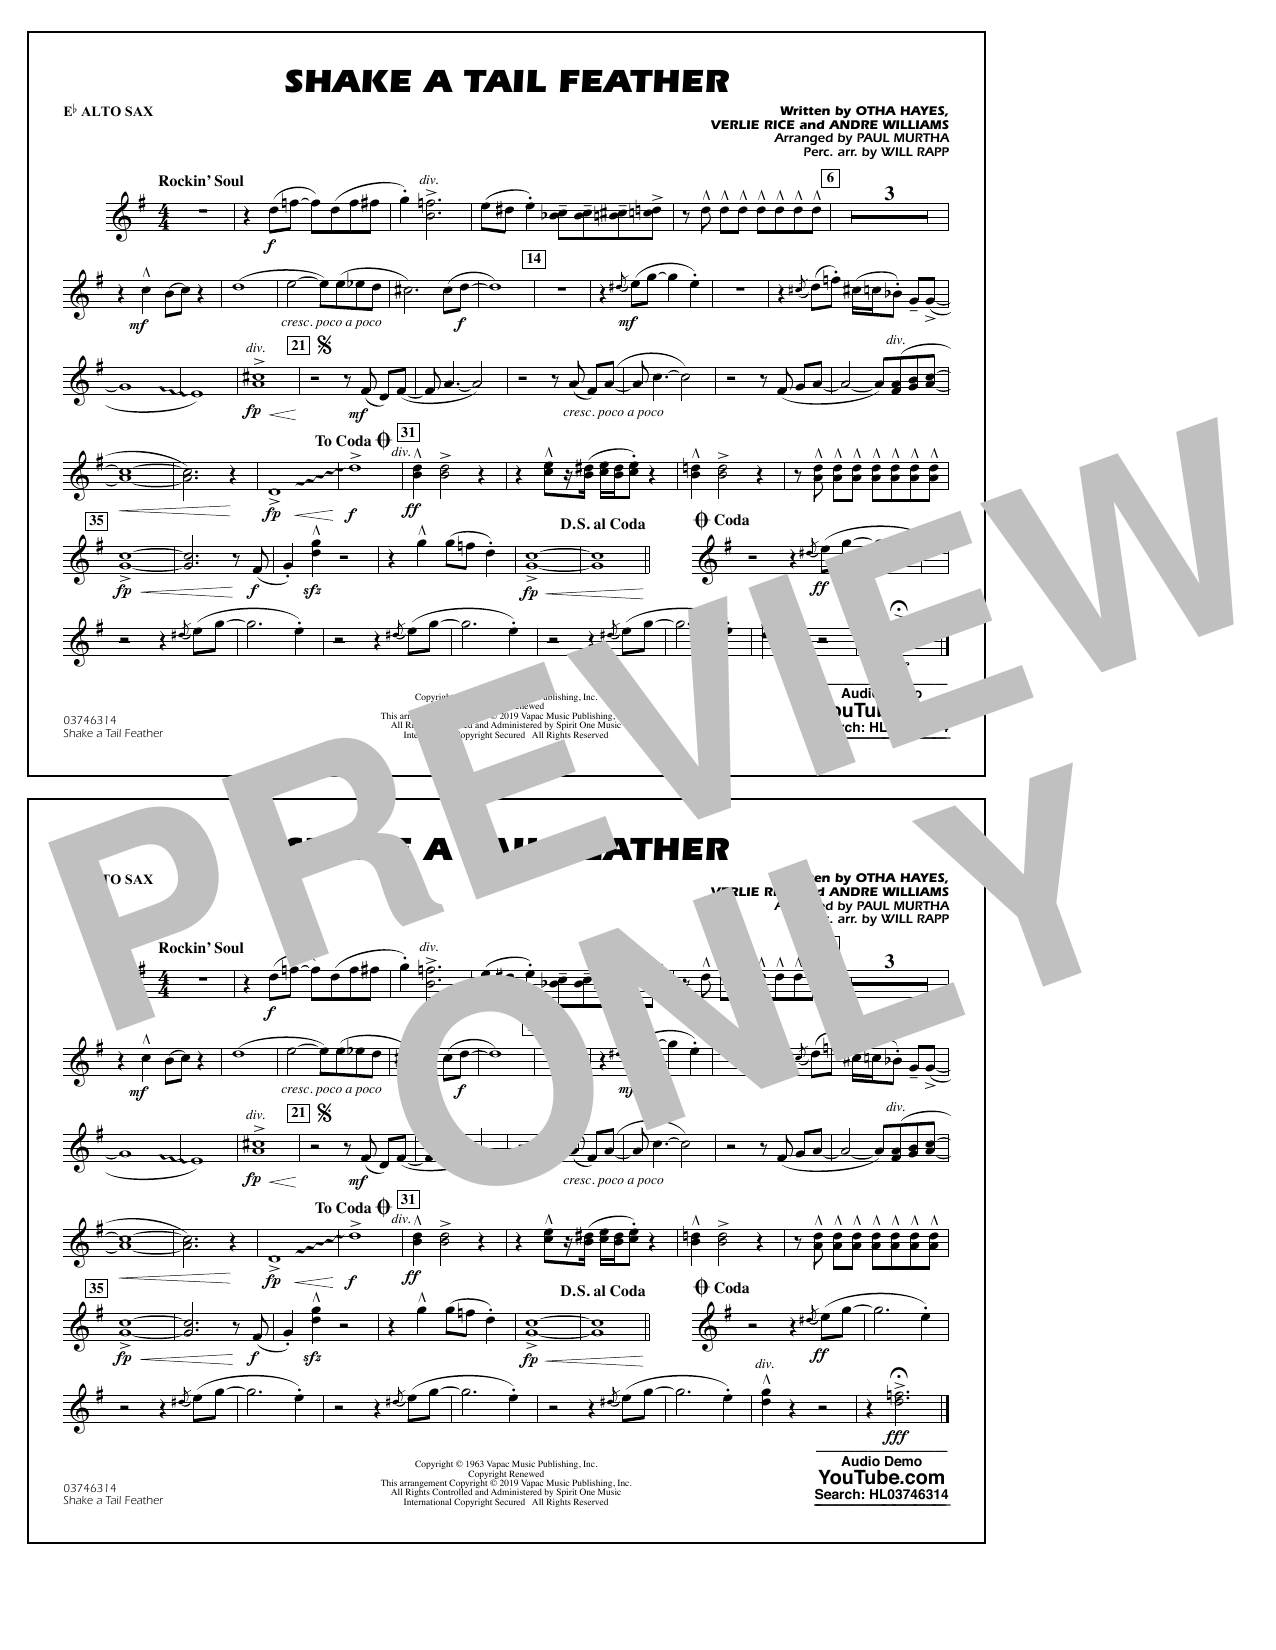 Ray Charles Shake a Tail Feather (arr. Paul Murtha) - Eb Alto Sax sheet music notes and chords